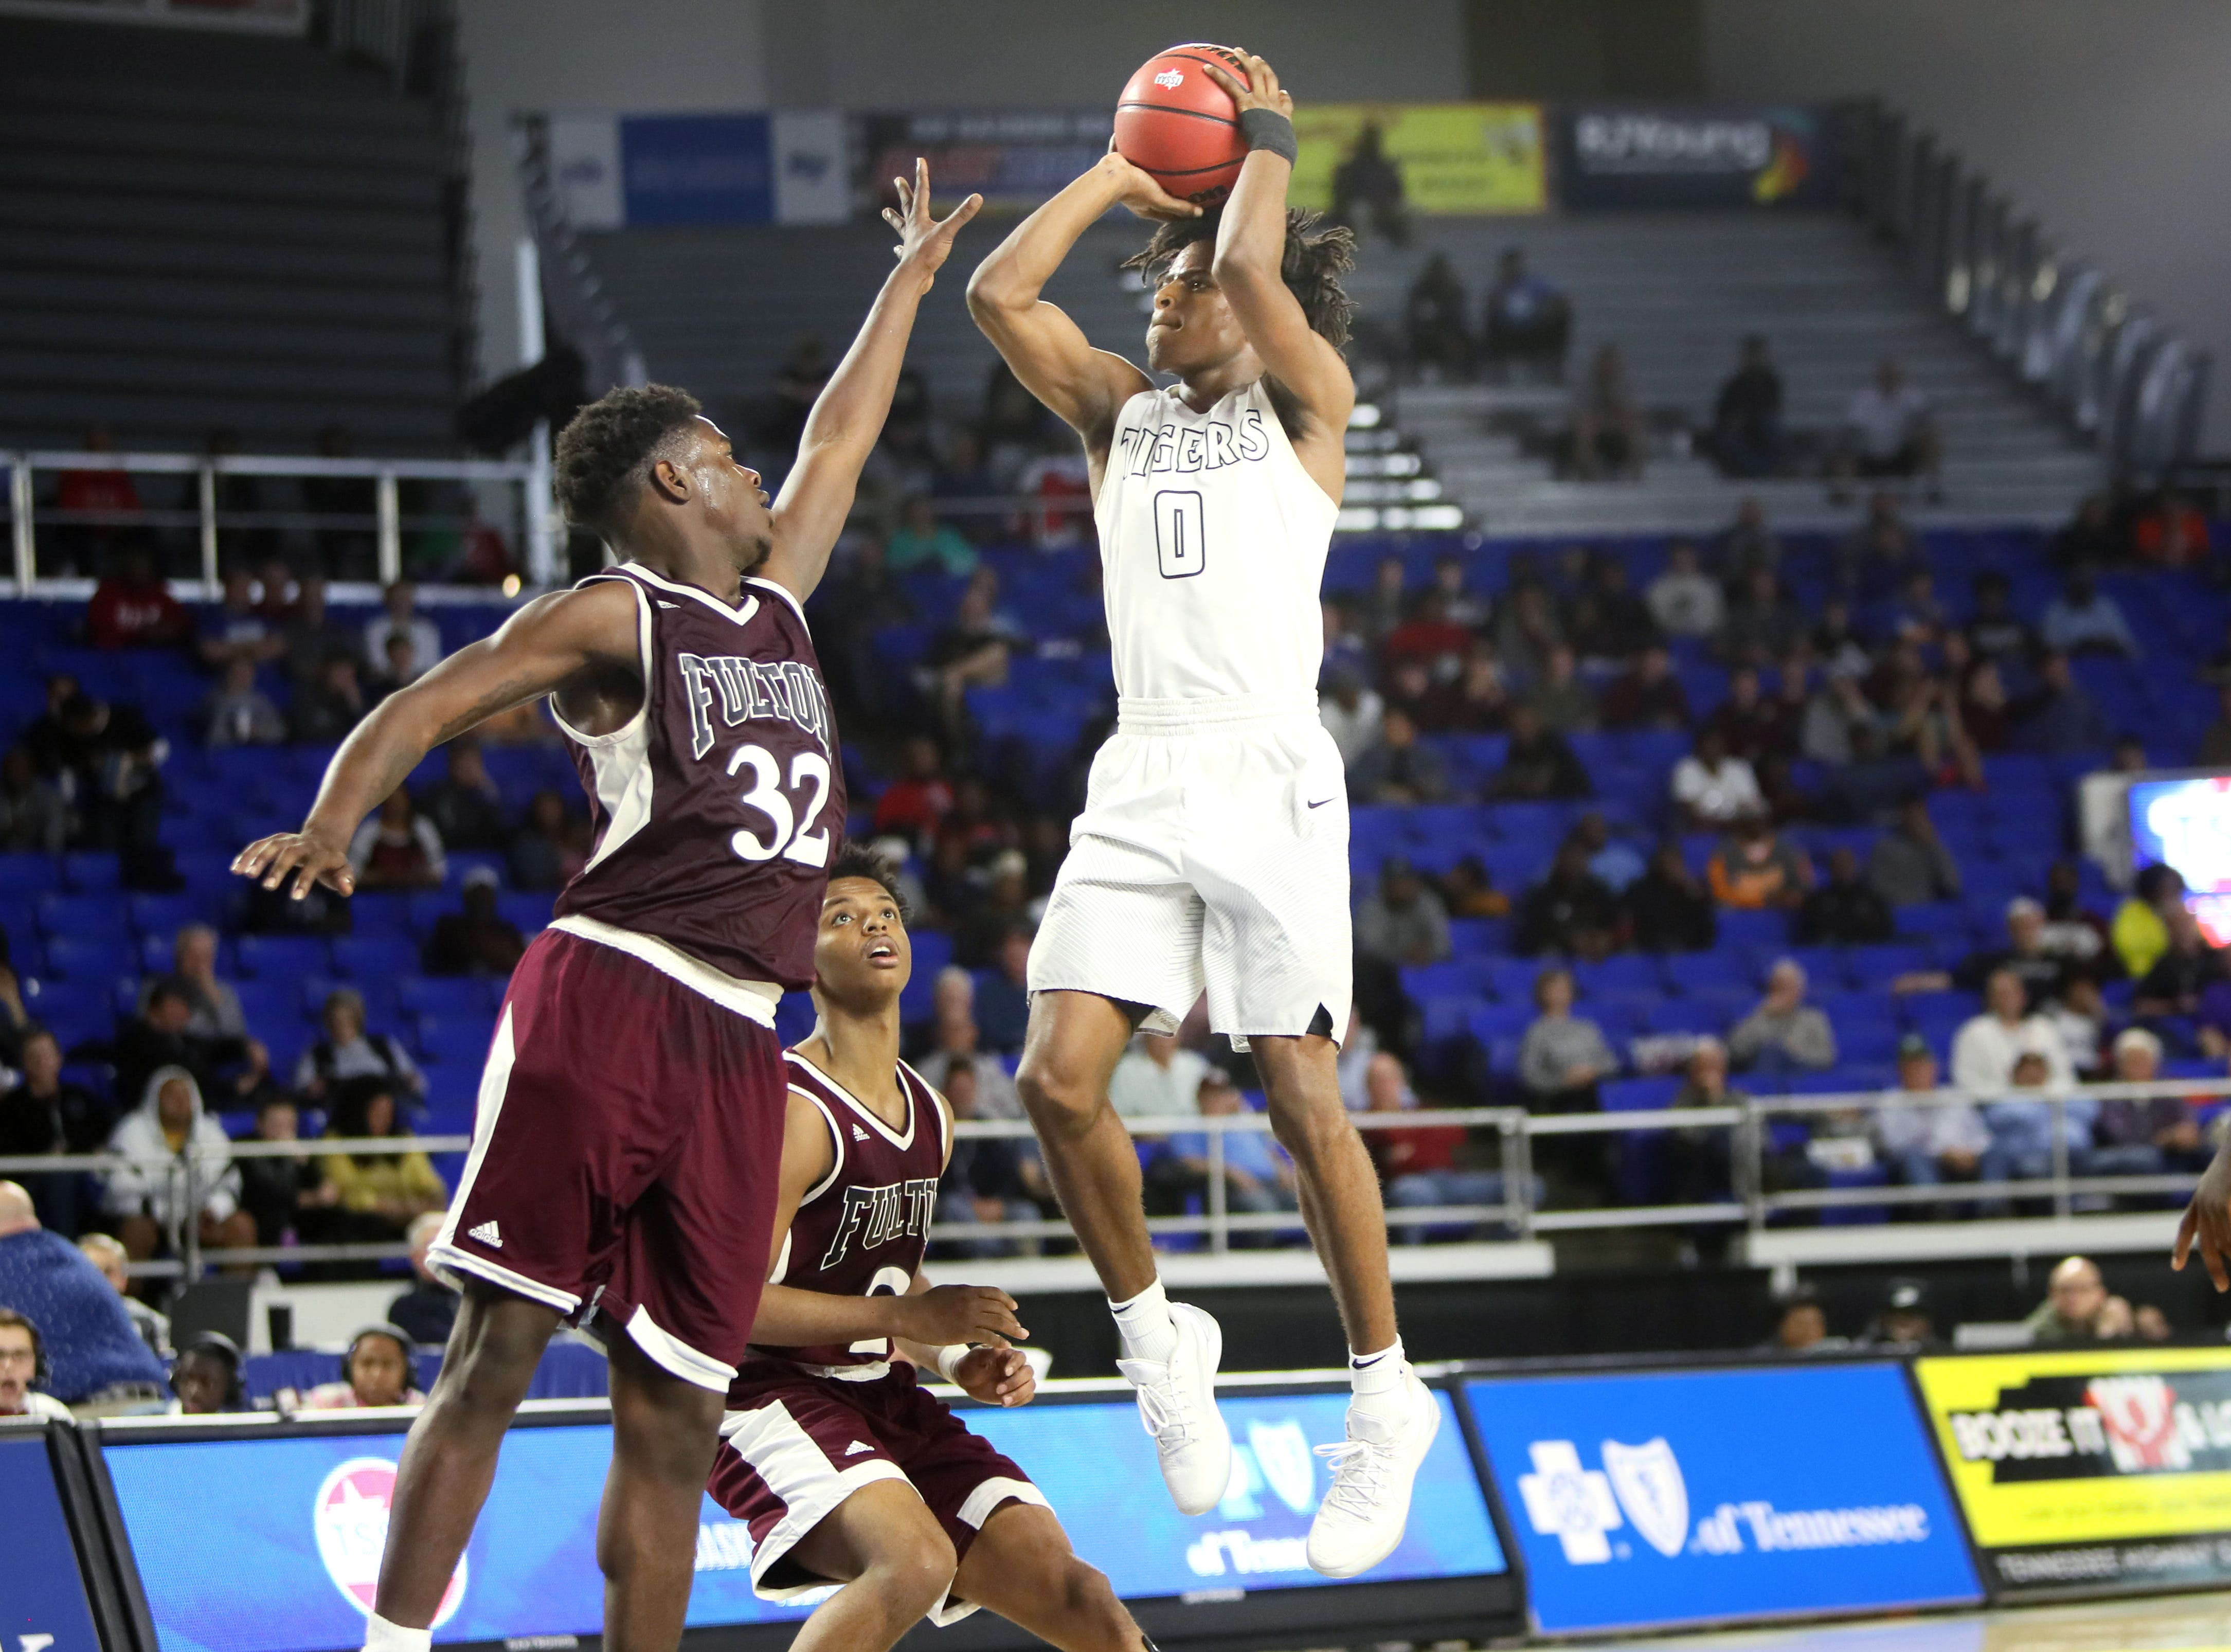 Mitchell's Michael Rice shoots the ball over Fulton's Deshaun Page during the TSSAA Division I basketball state tournament in Murfreesboro on Wednesday, March 13, 2019.